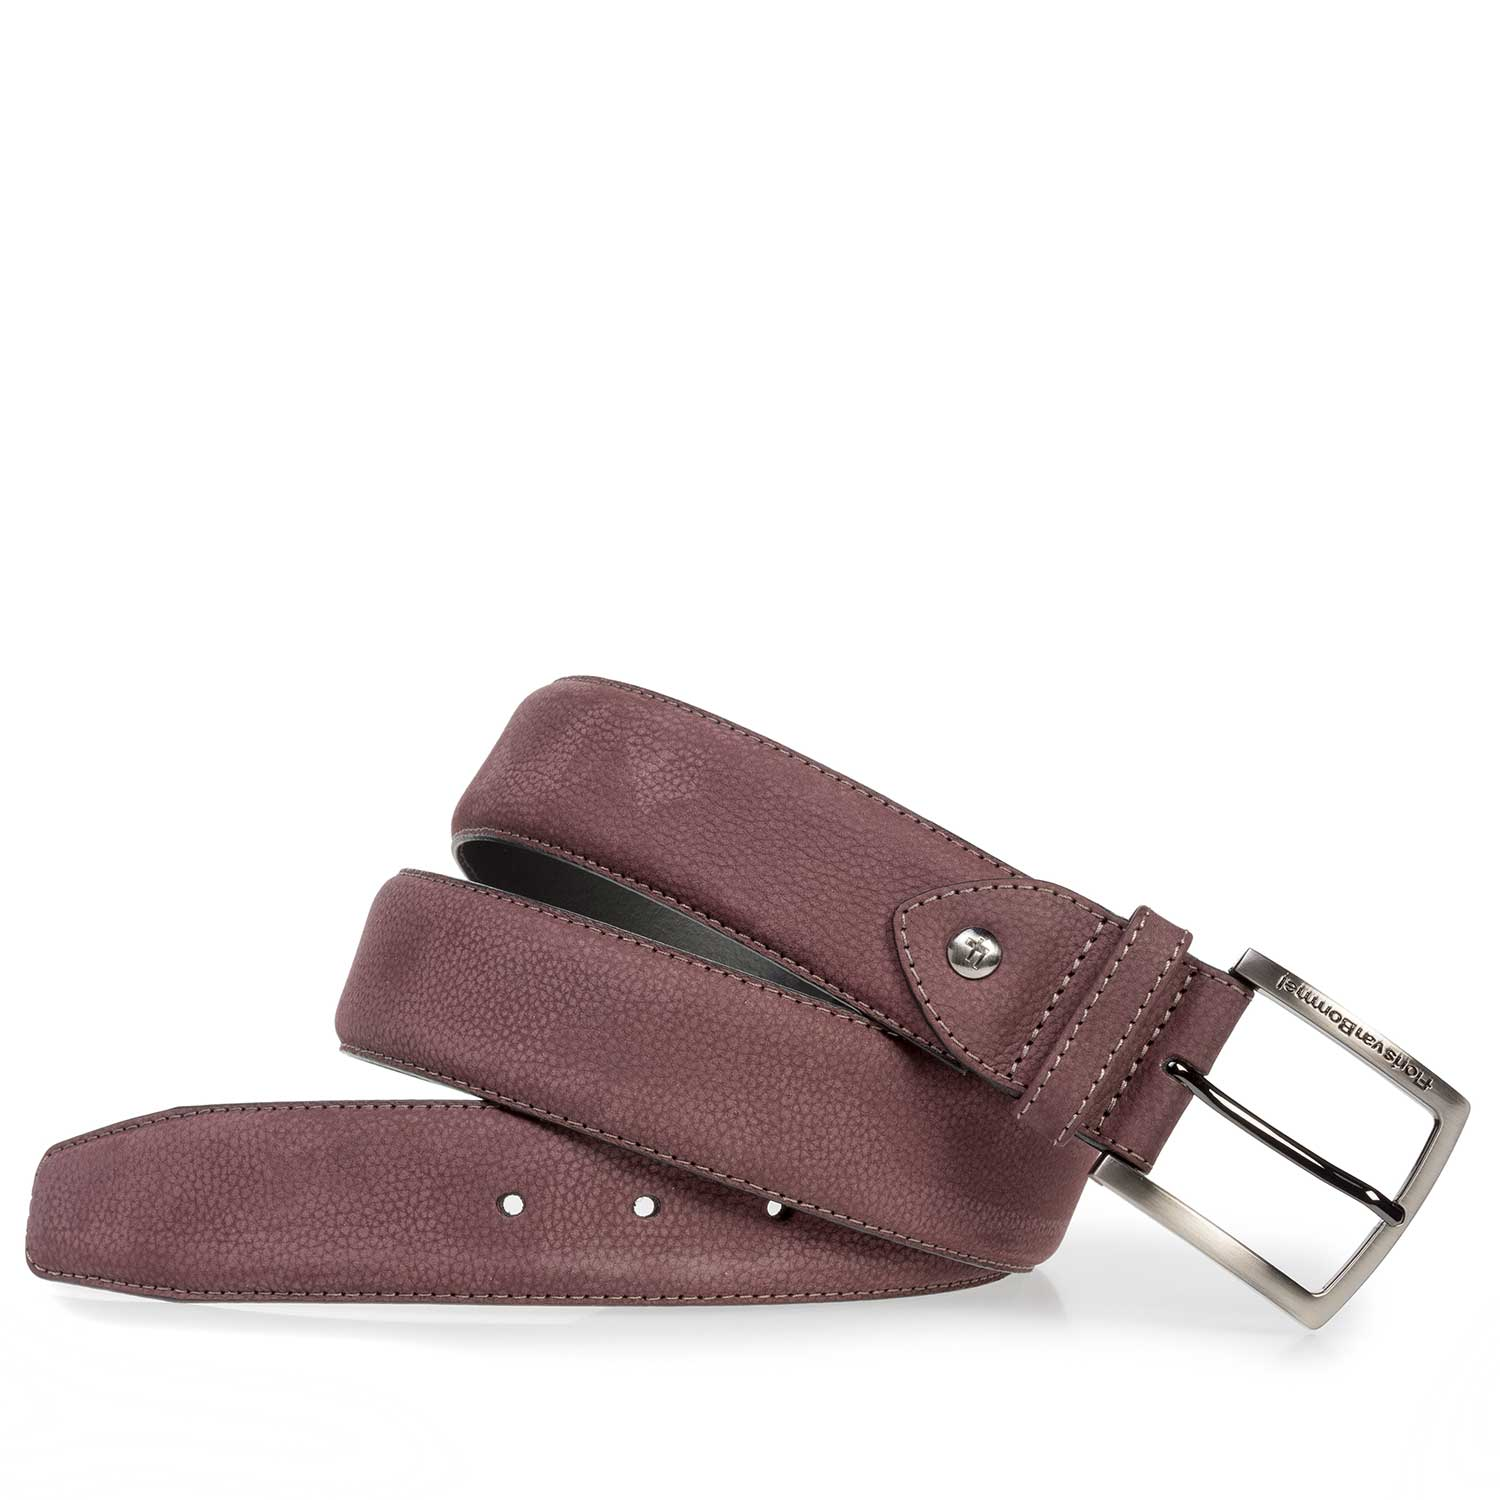 75202/30 - Red printed nubuck leather belt